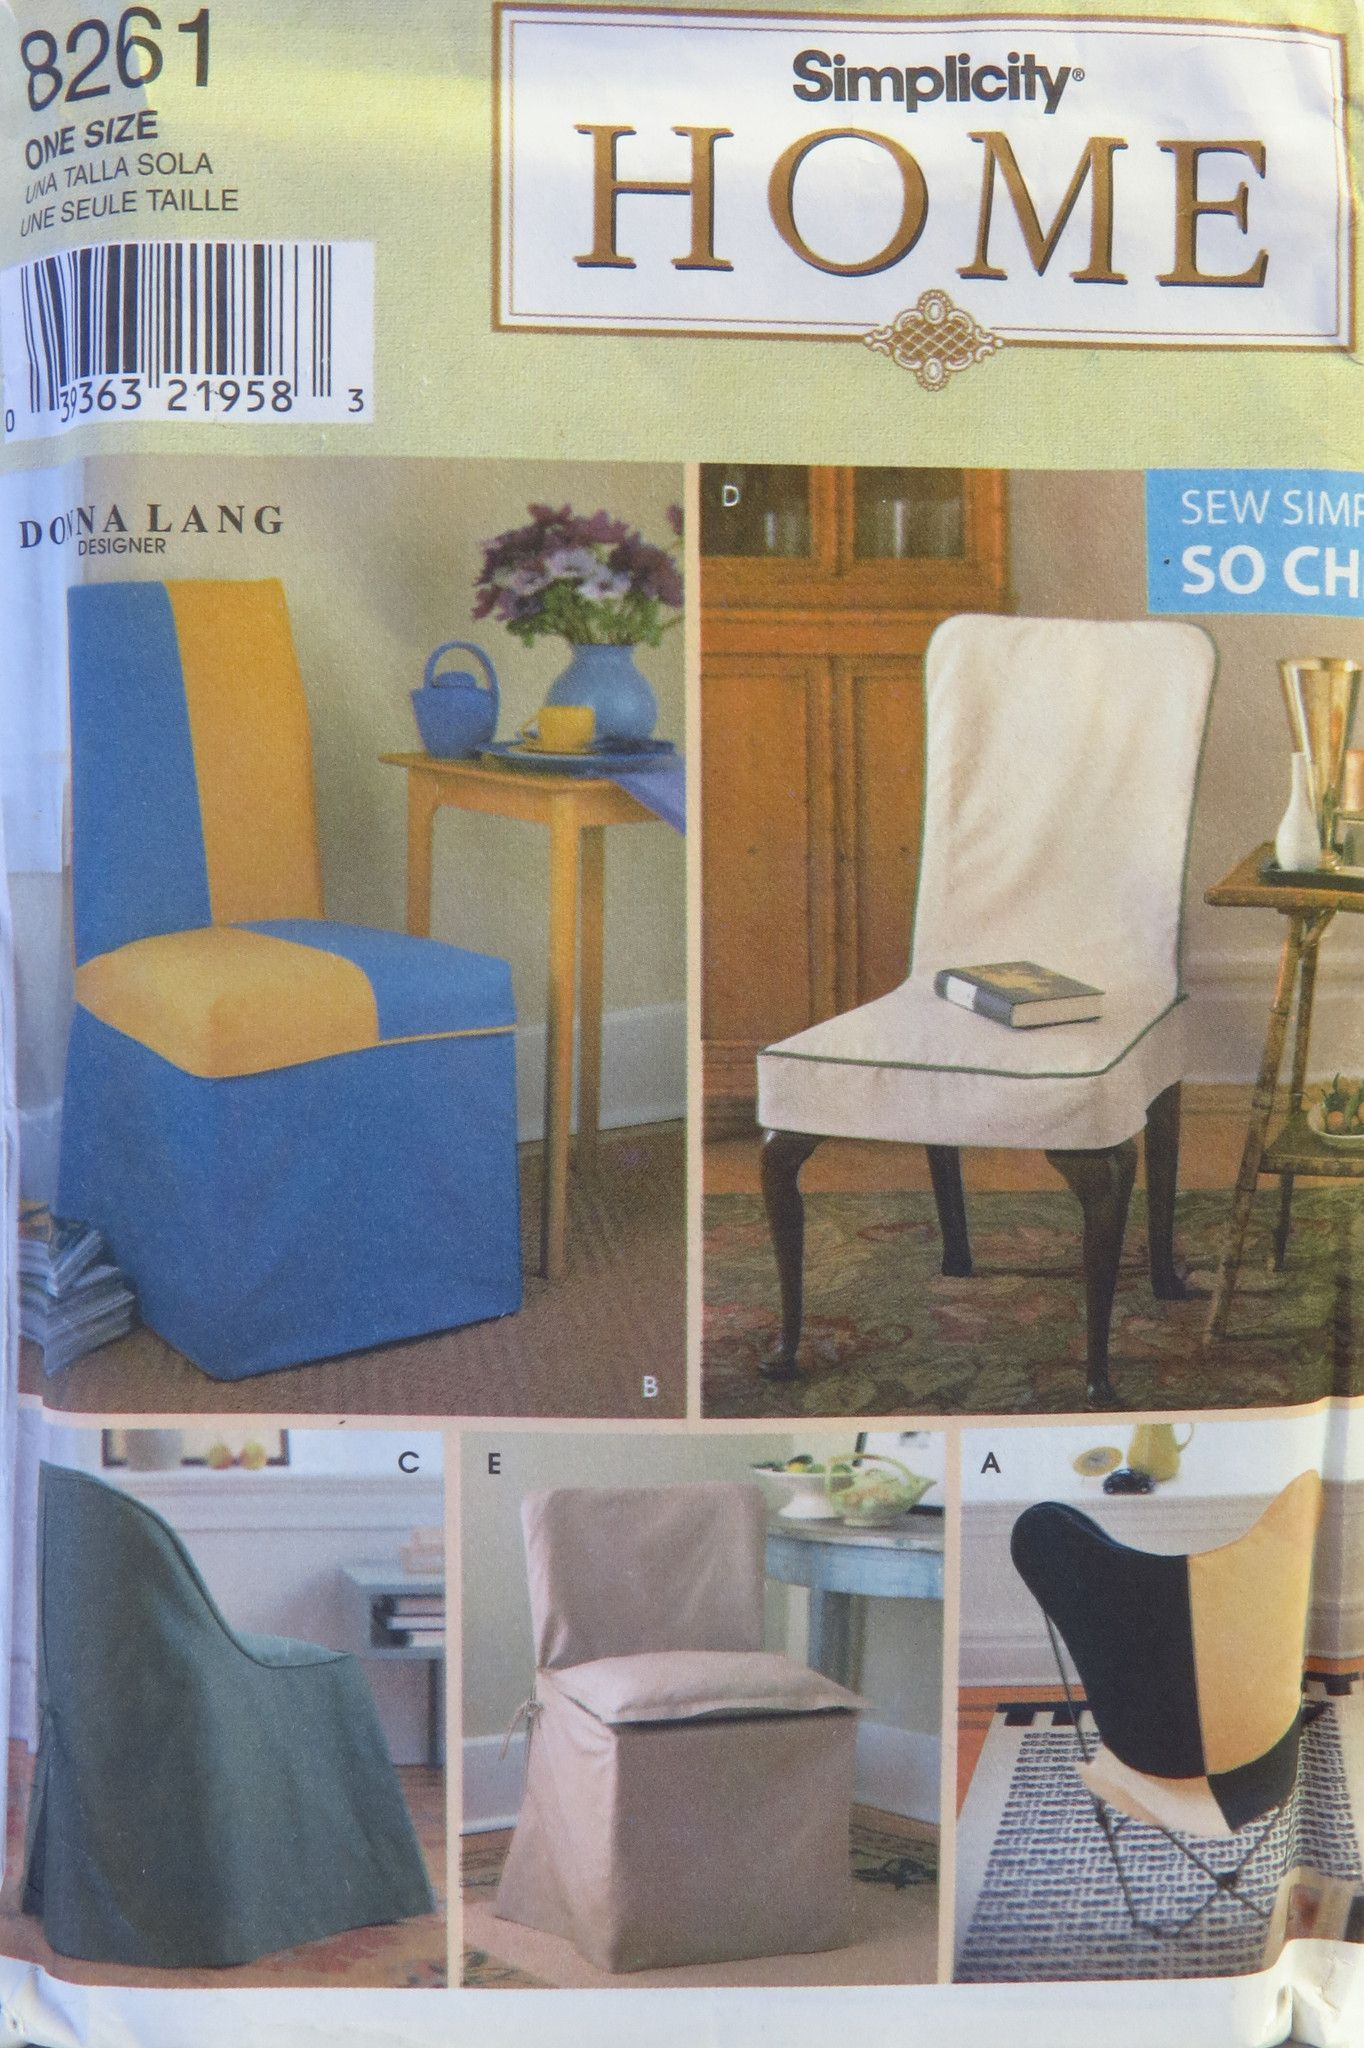 Chair Cover Patterns Simplicity 8261 Chair Covers Simplicity Patterns Chair Covers